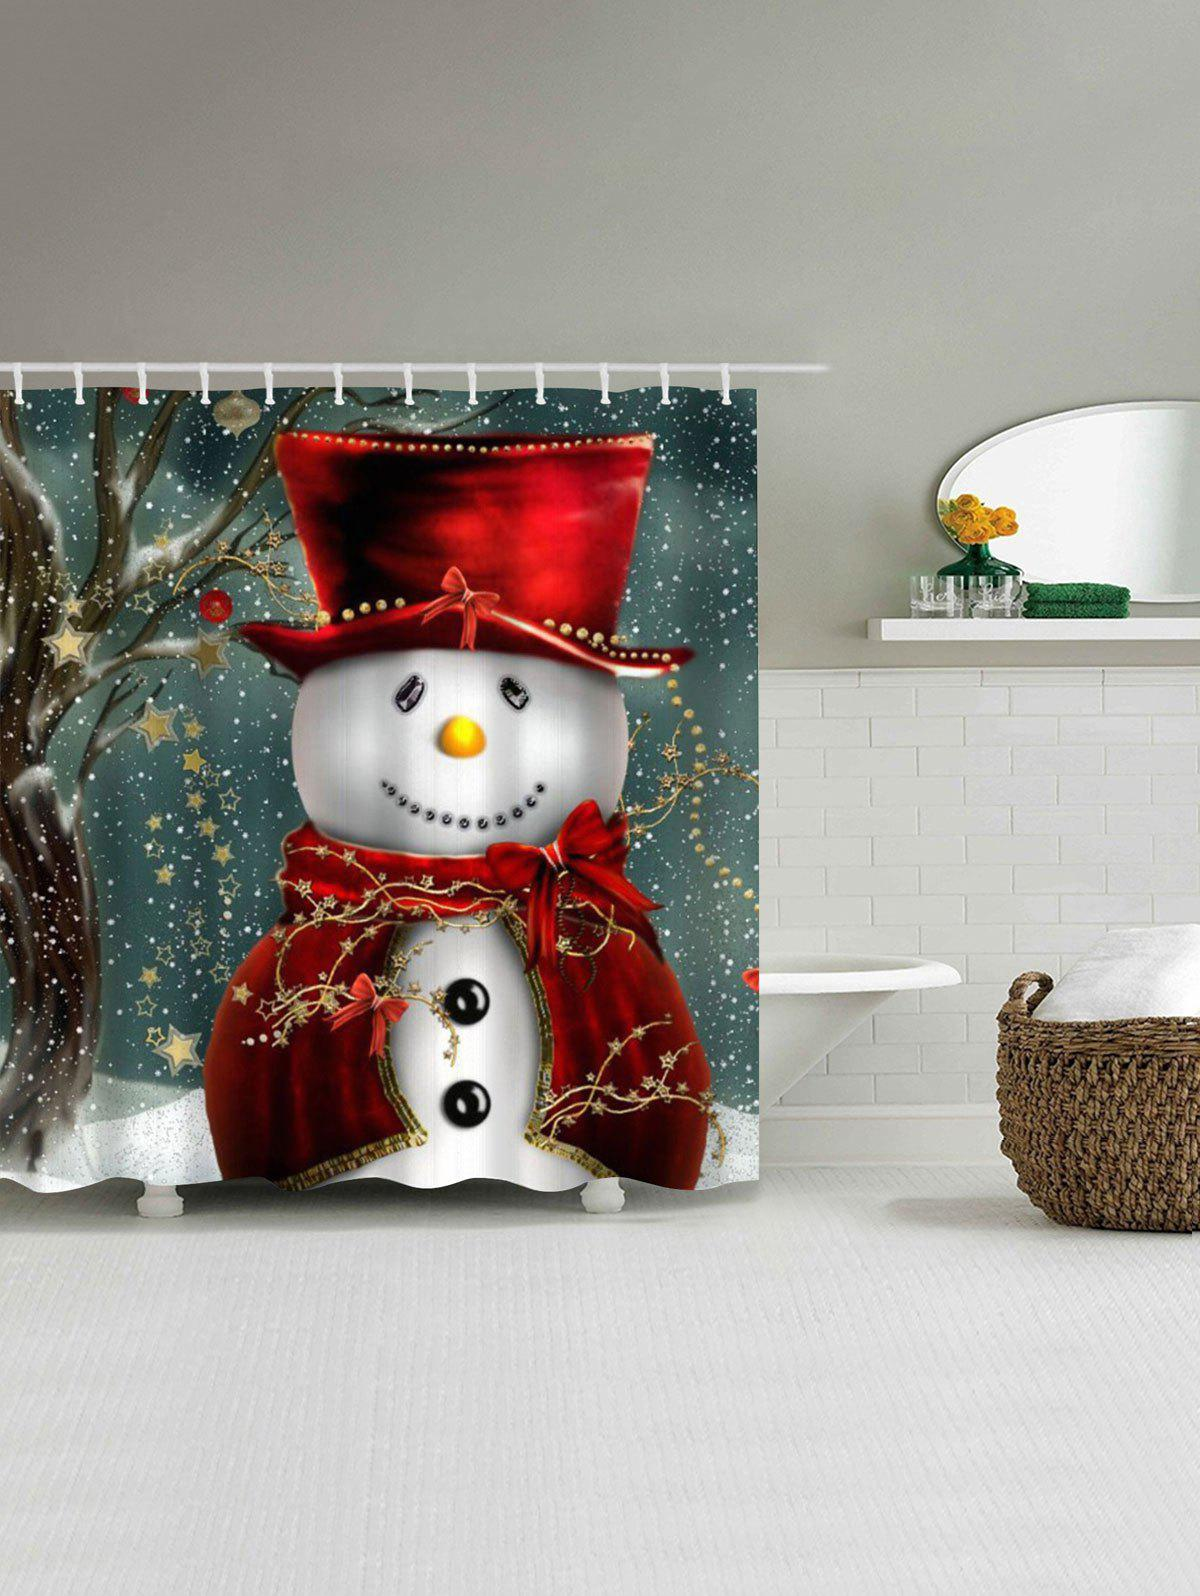 Discount Christmas Snowman Mouldproof Waterproof Bathroom Shower Curtain